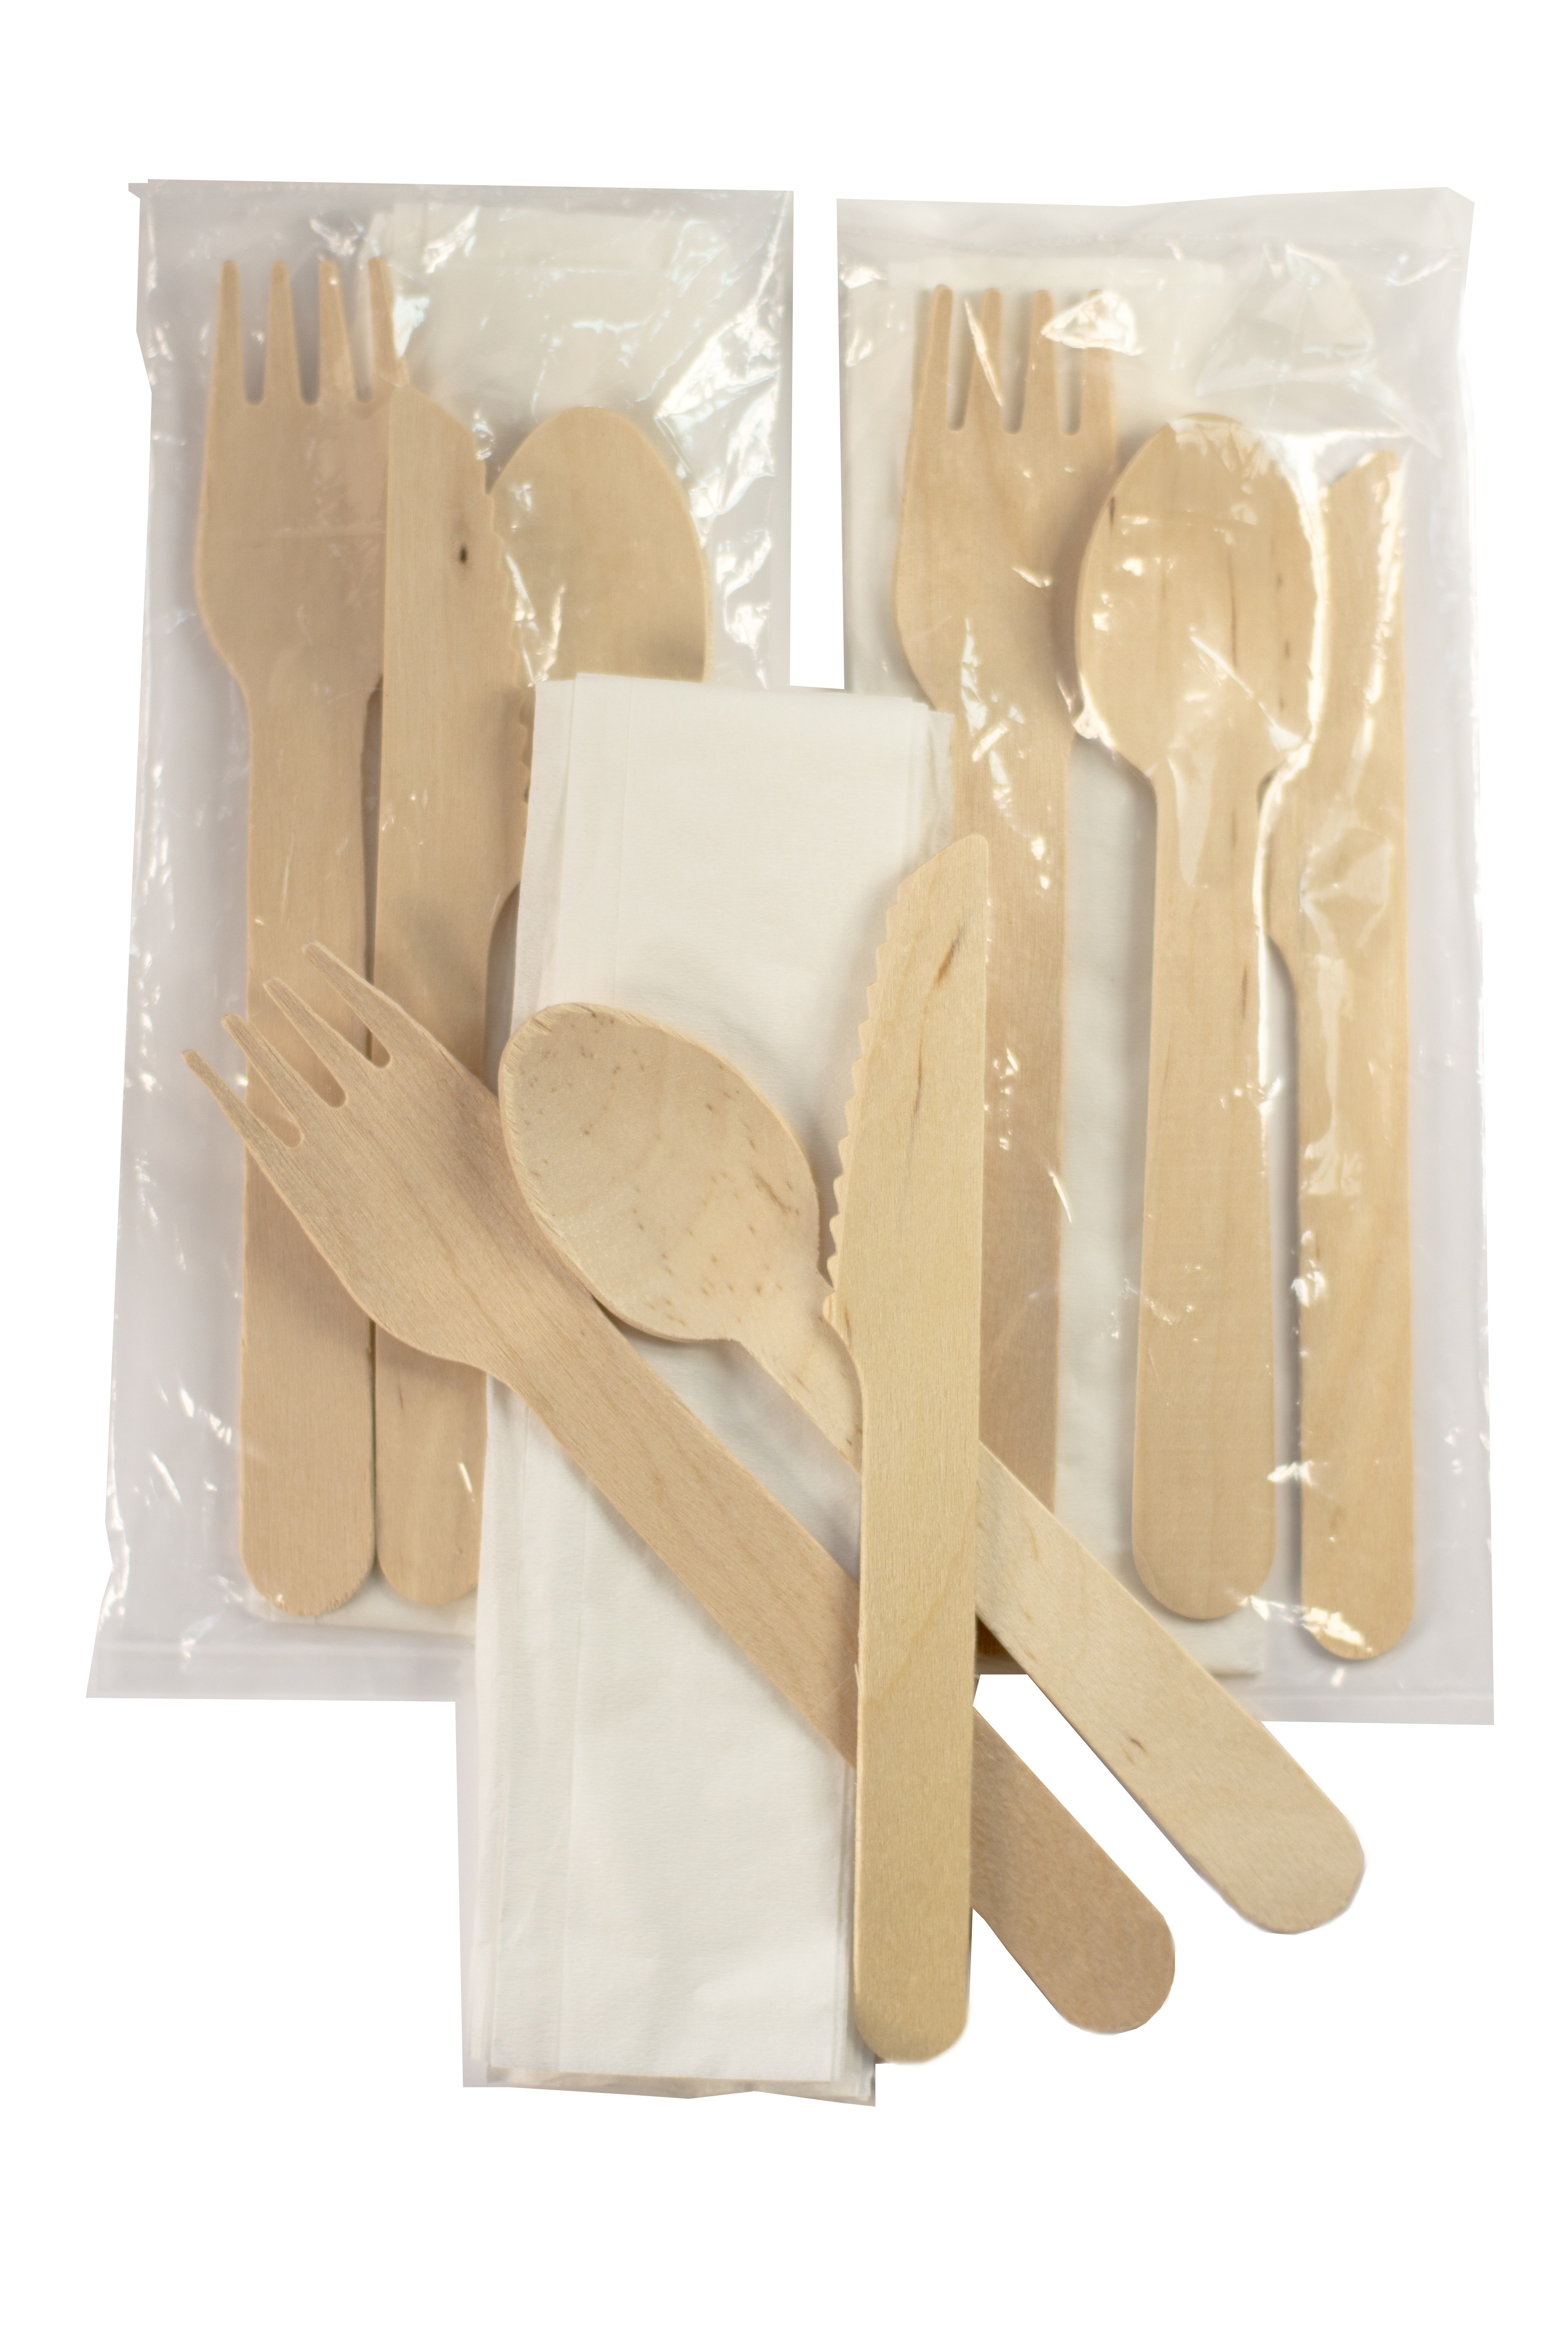 "6"" Green Cutlery Kit Includes Knife, Fork, Spoon and Napkin in a Biodegradable Bag  (Pack of 50) (Item# Cutlery Kit 50)"